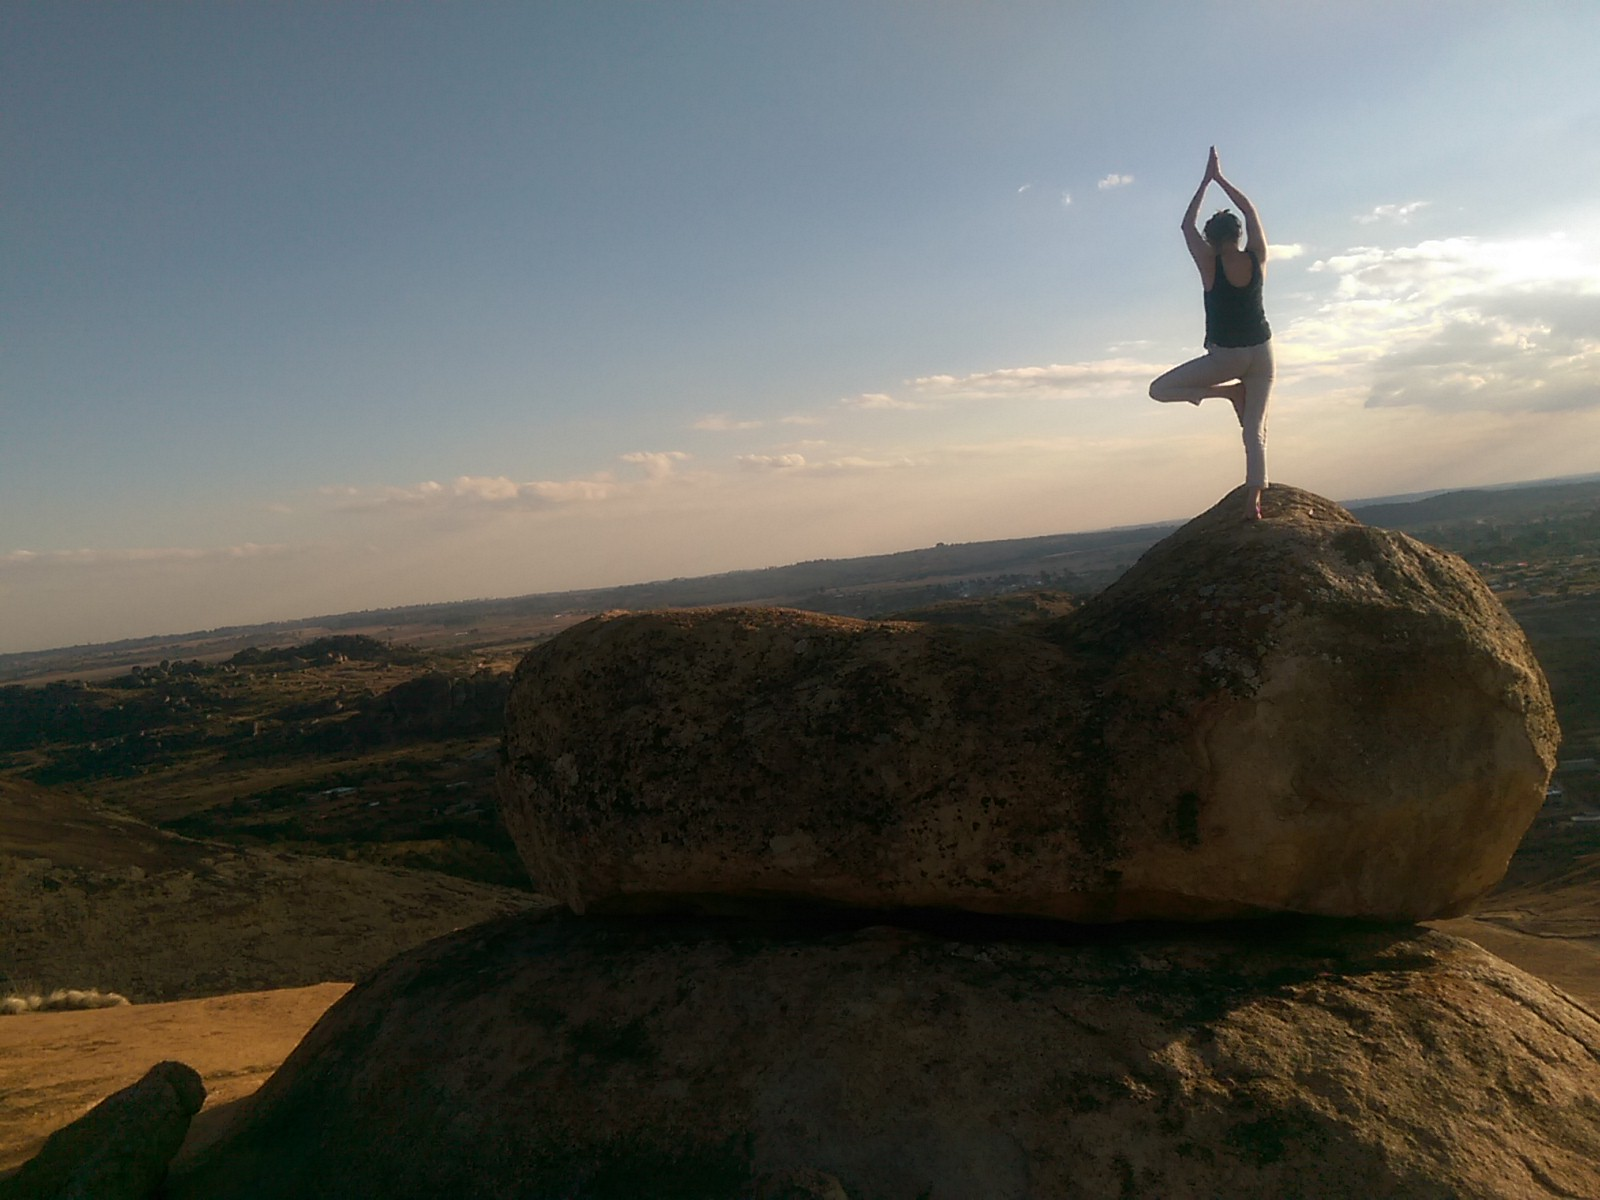 The silhouette of a woman doing yoga tree pose on a large rock with an epic view